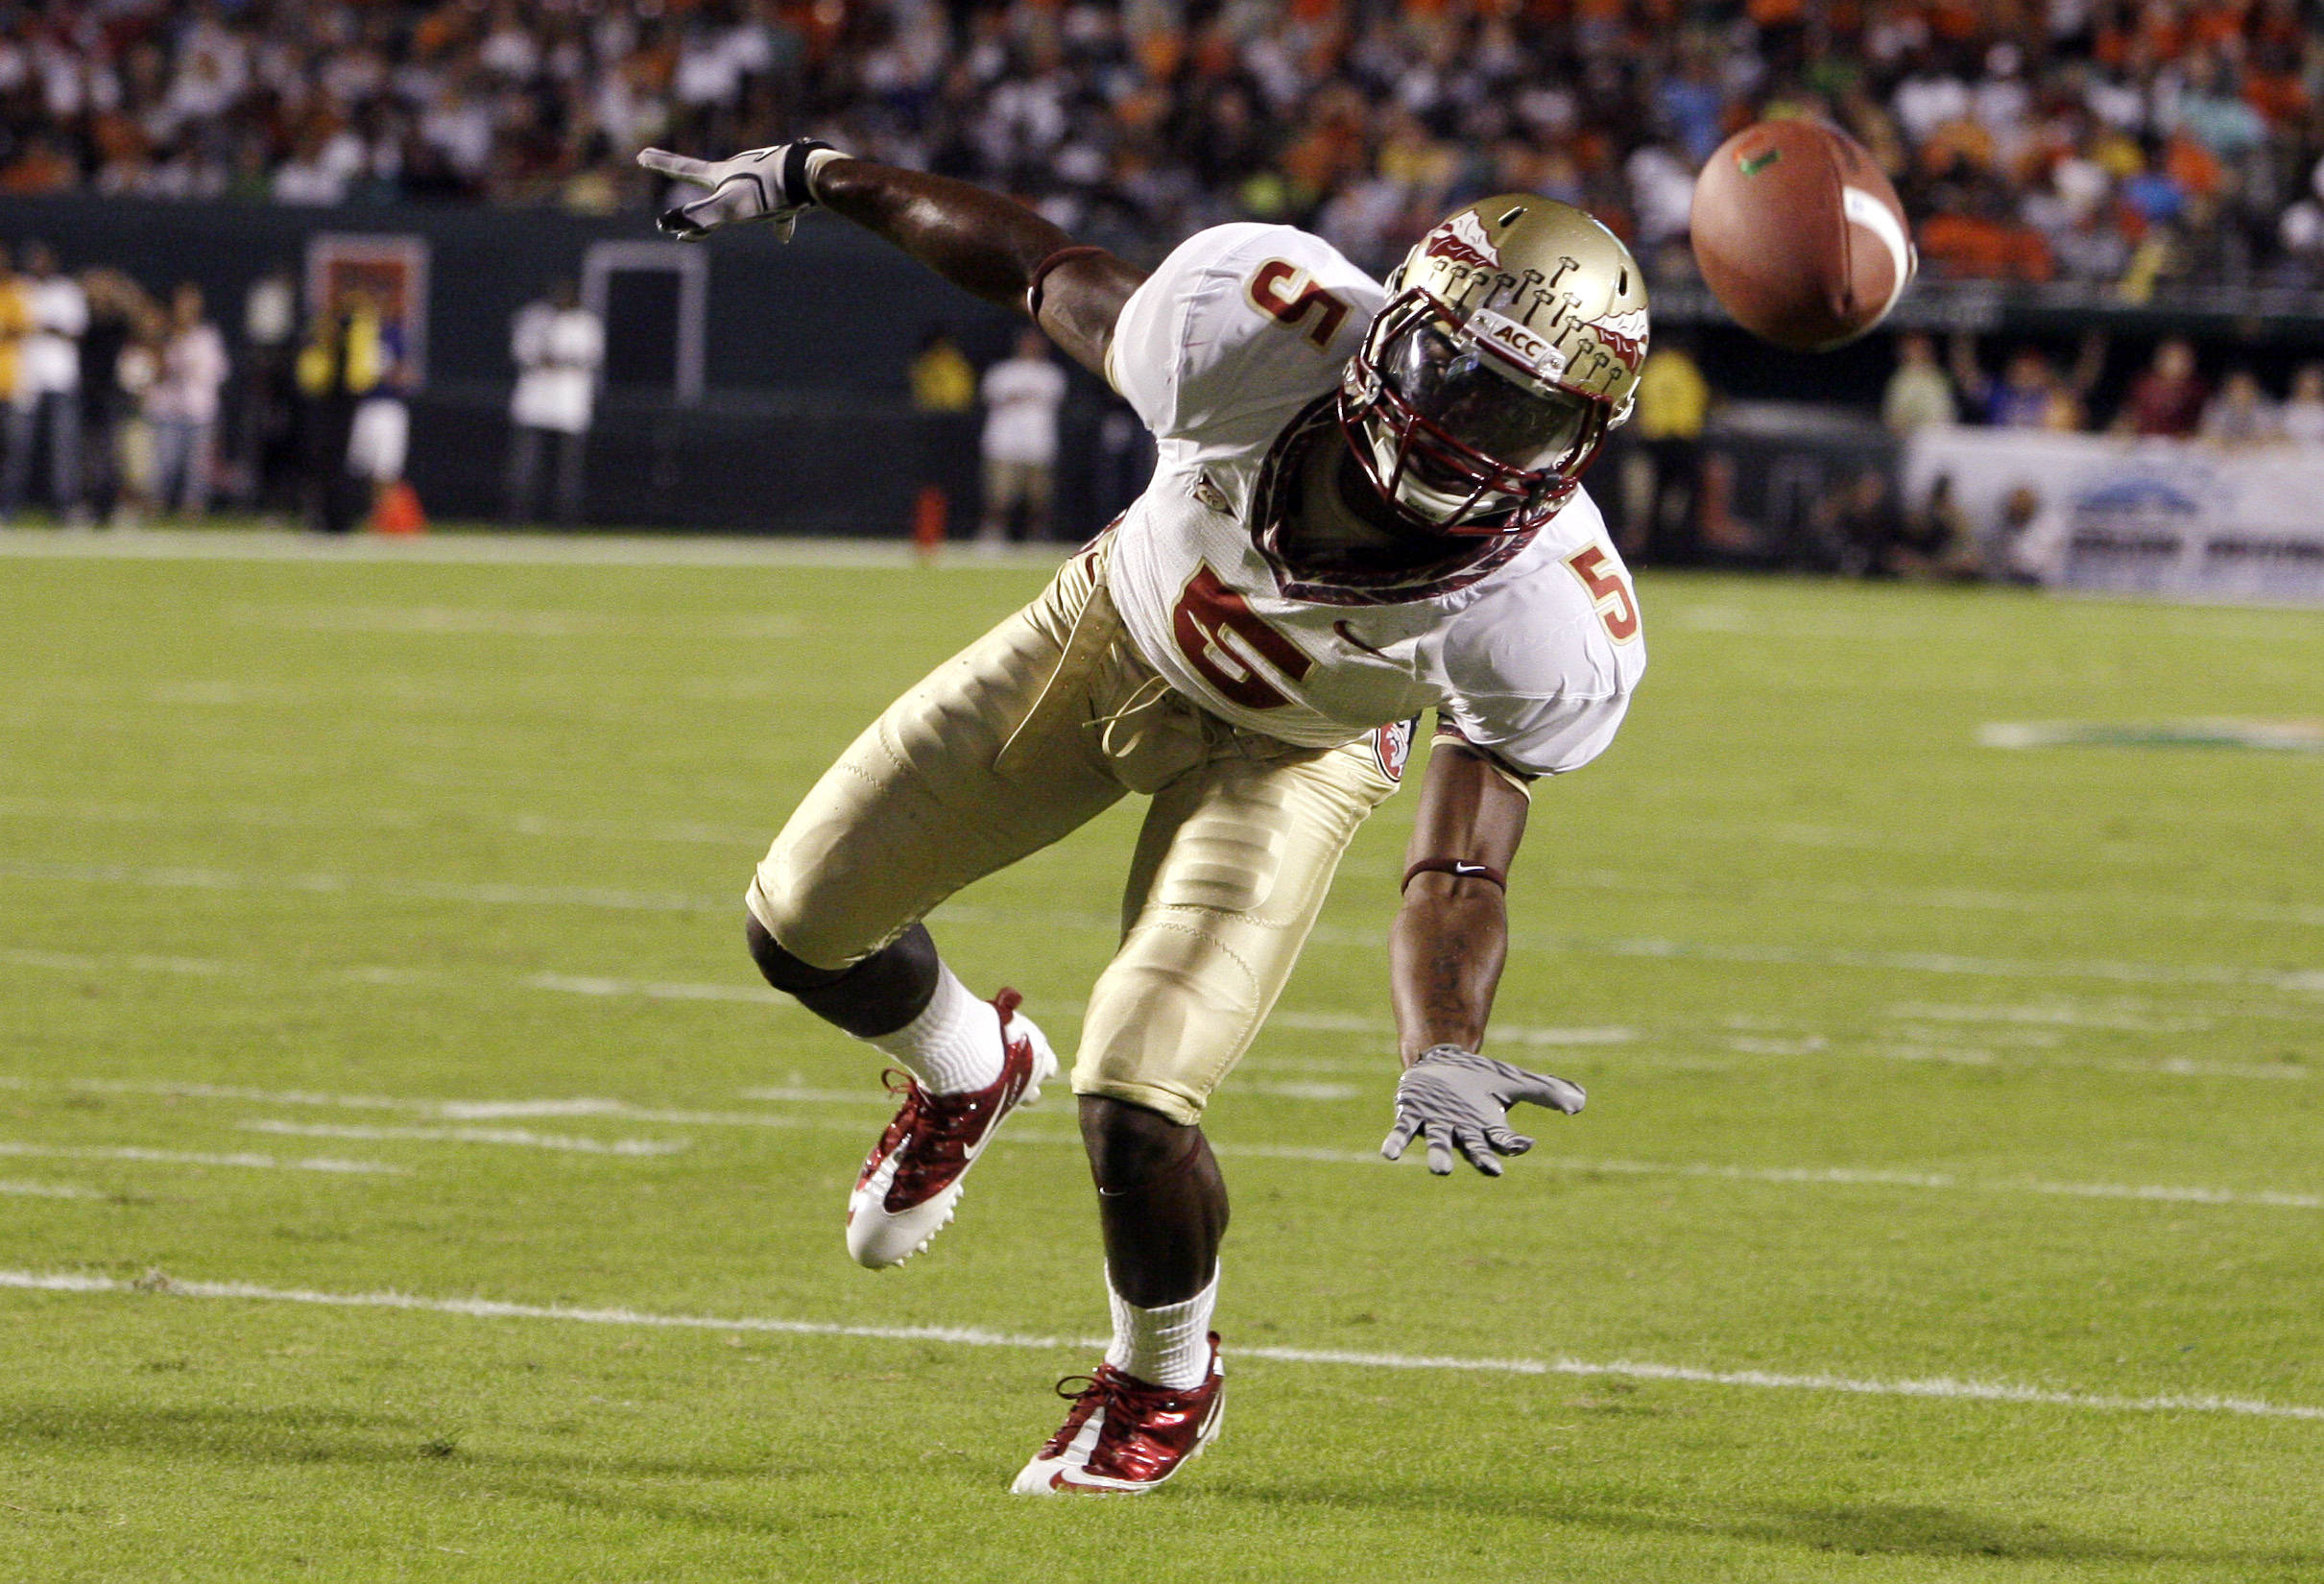 Florida State cornerback Greg Reid can't make the catch for an interception on a pass thrown by Miami quarterback Jacory Harris.